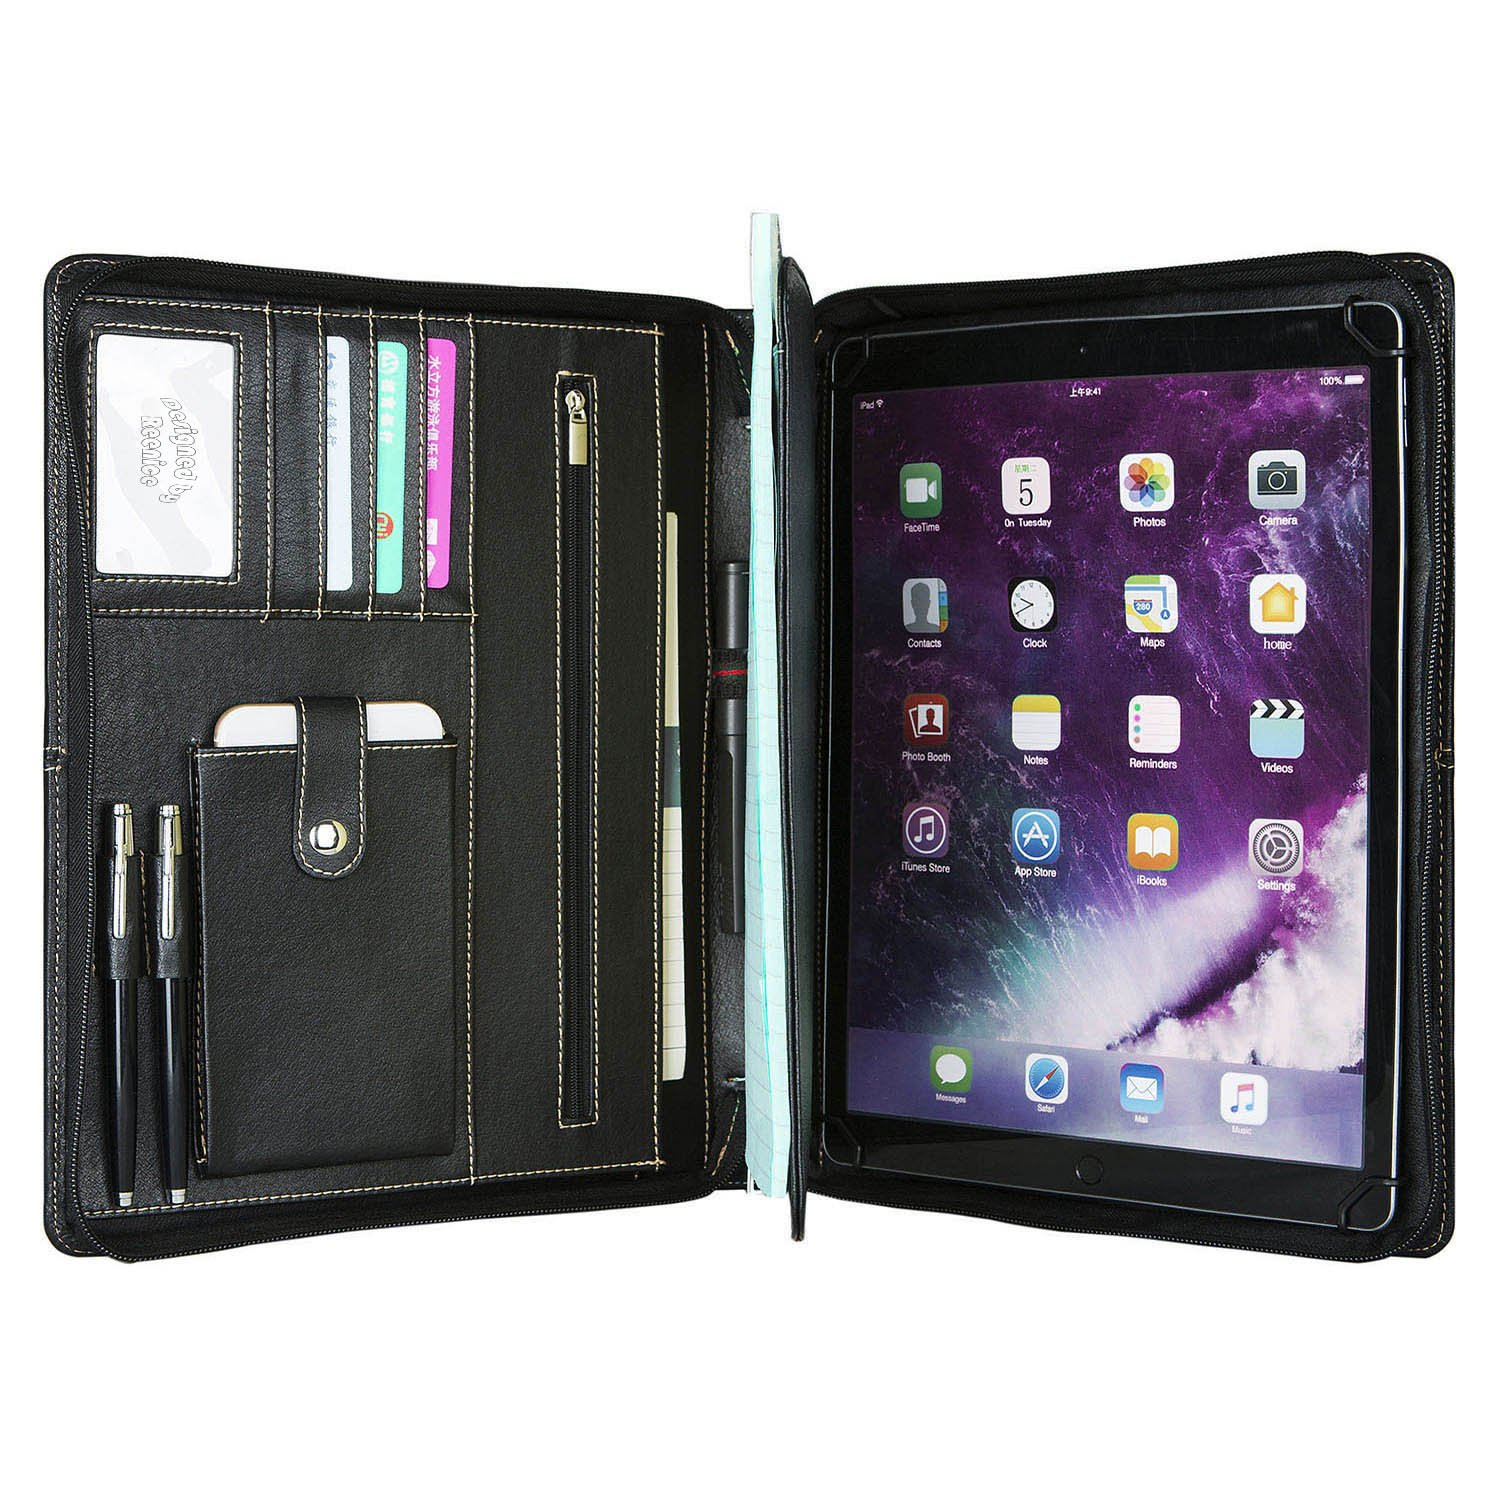 Genuine Leather Portfolio Professional Padfolio Zippered Briefcase for iPad Pro 12.9 inch with Handle, Multi-Function Office Organizer Interview Document Holder Business Folder Black